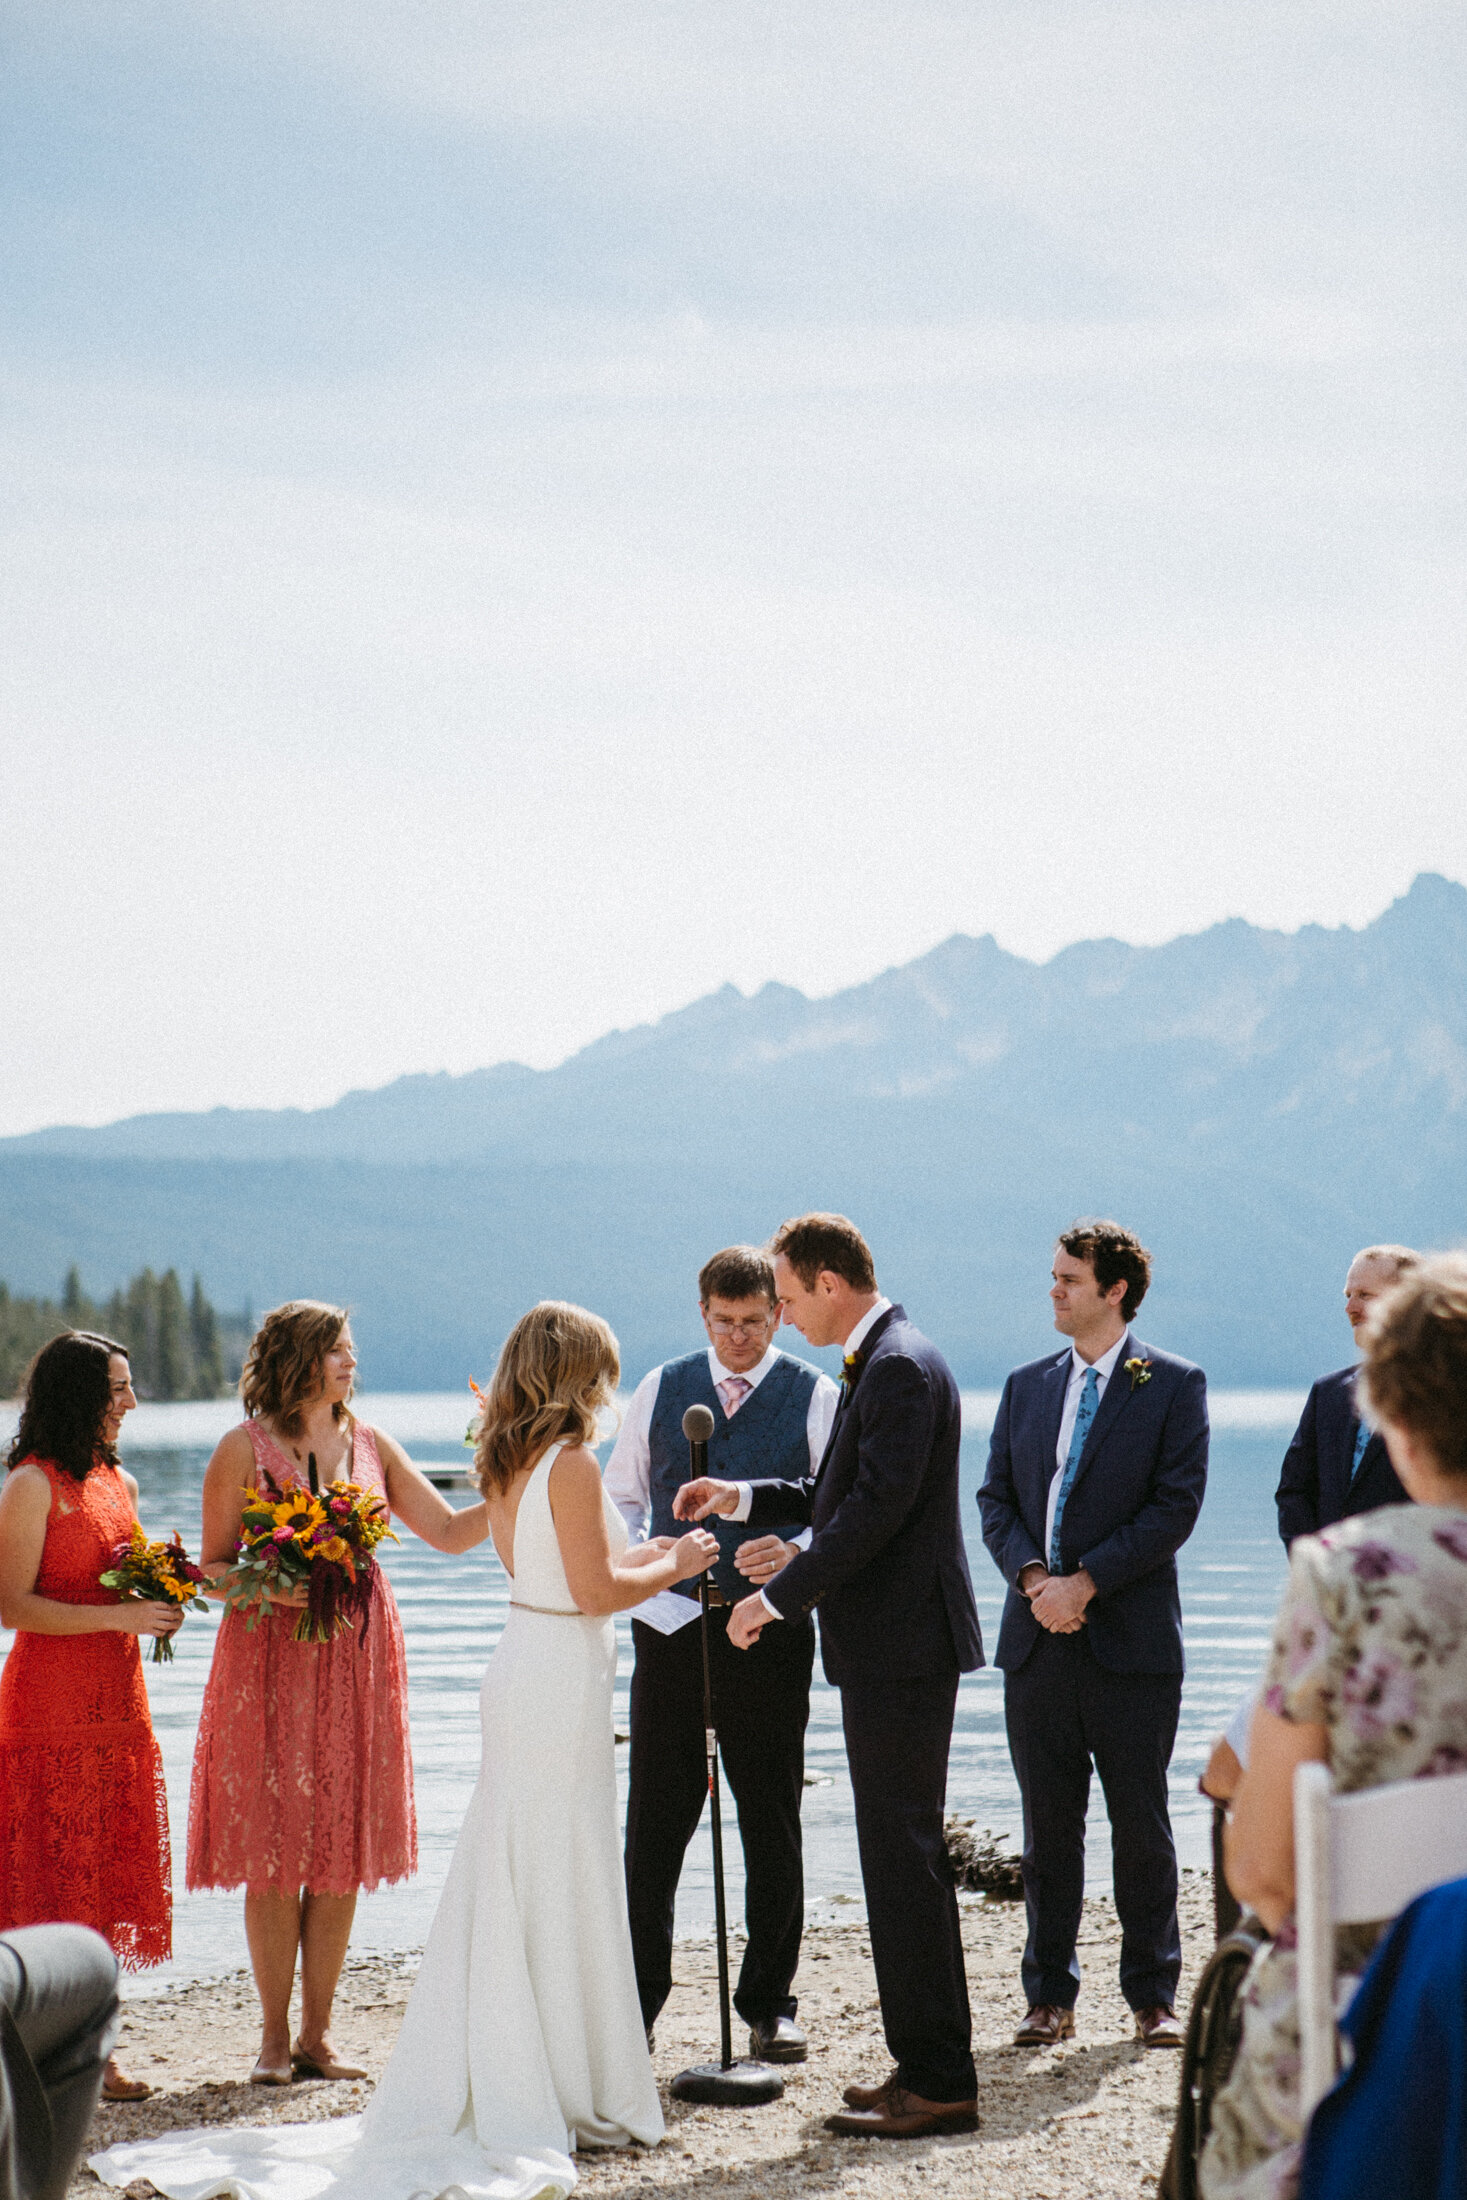 redfish-lake-wedding-stanley-idaho-b_A-65.jpg